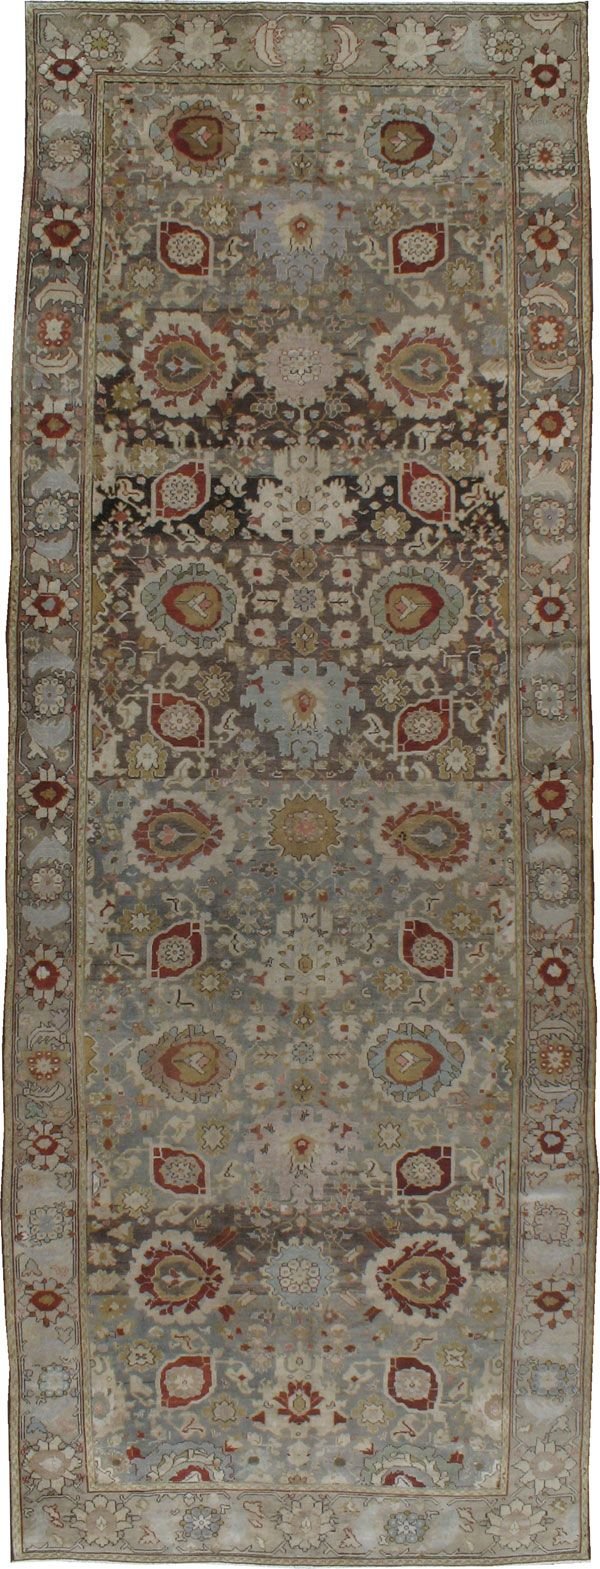 Antique Malayer Gallery Carpet X Galerie Shabab